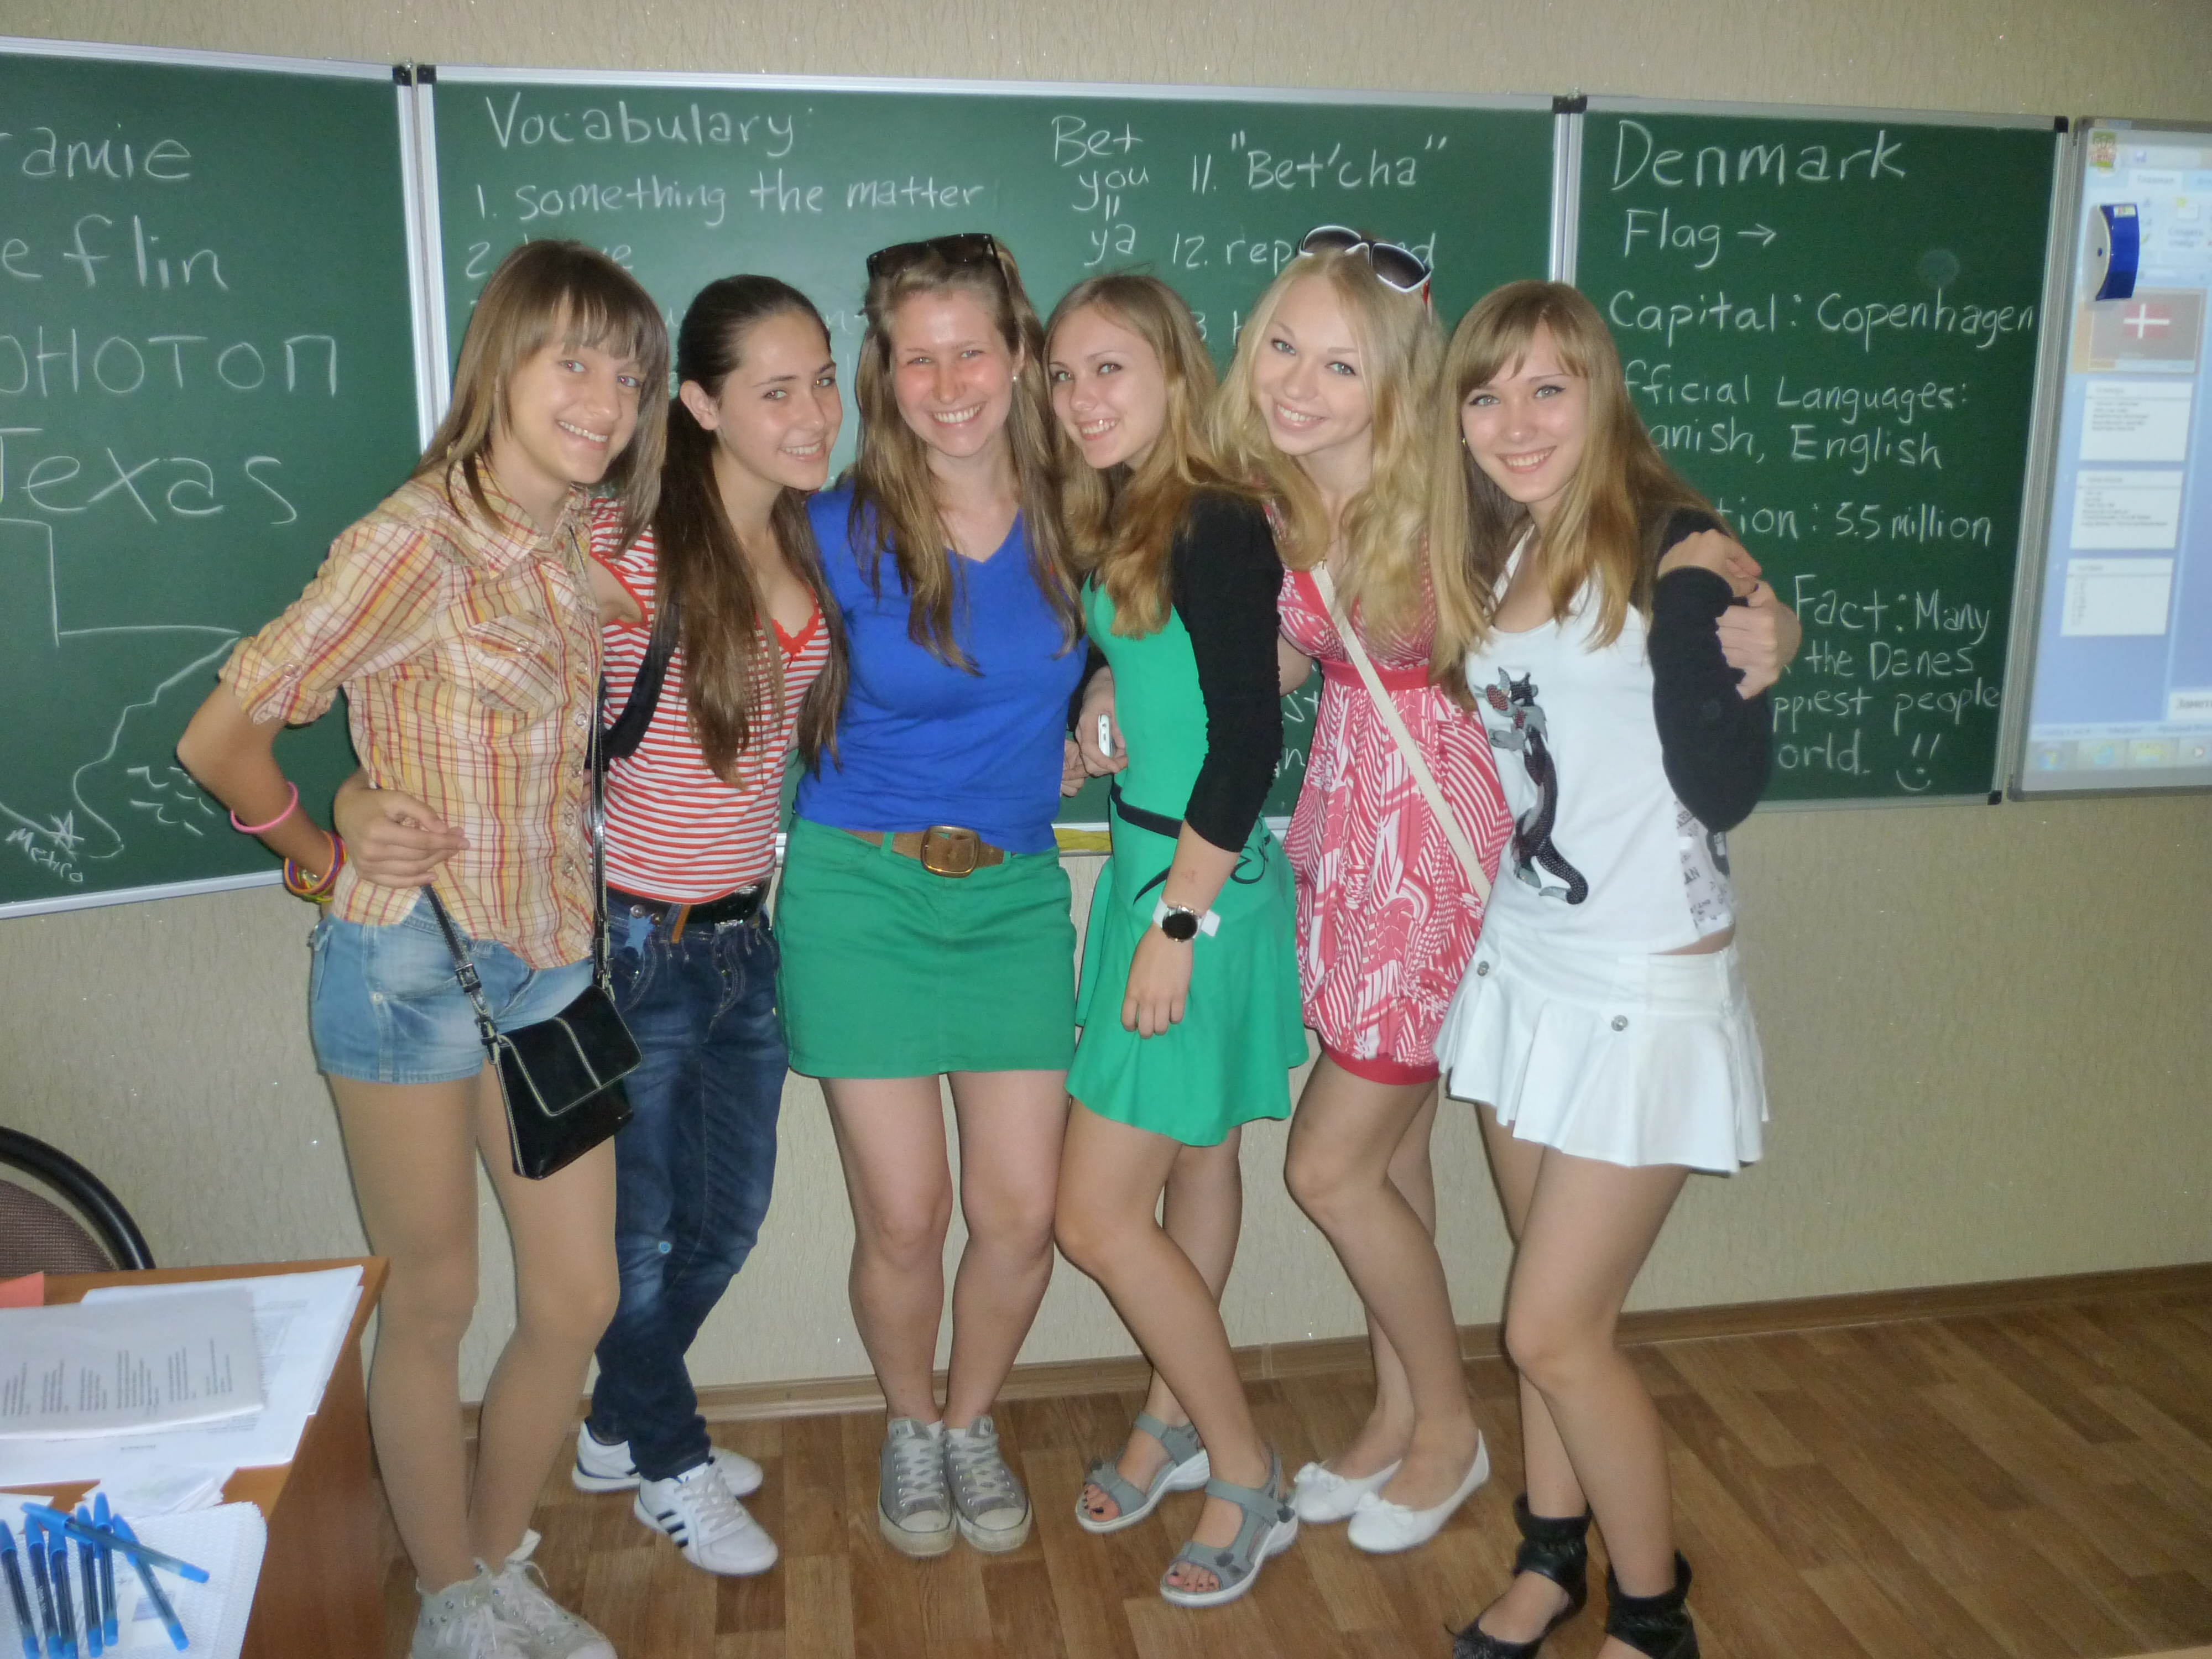 lassroom girls Some of my favorite 7th form girls and I after a class on Denmark!